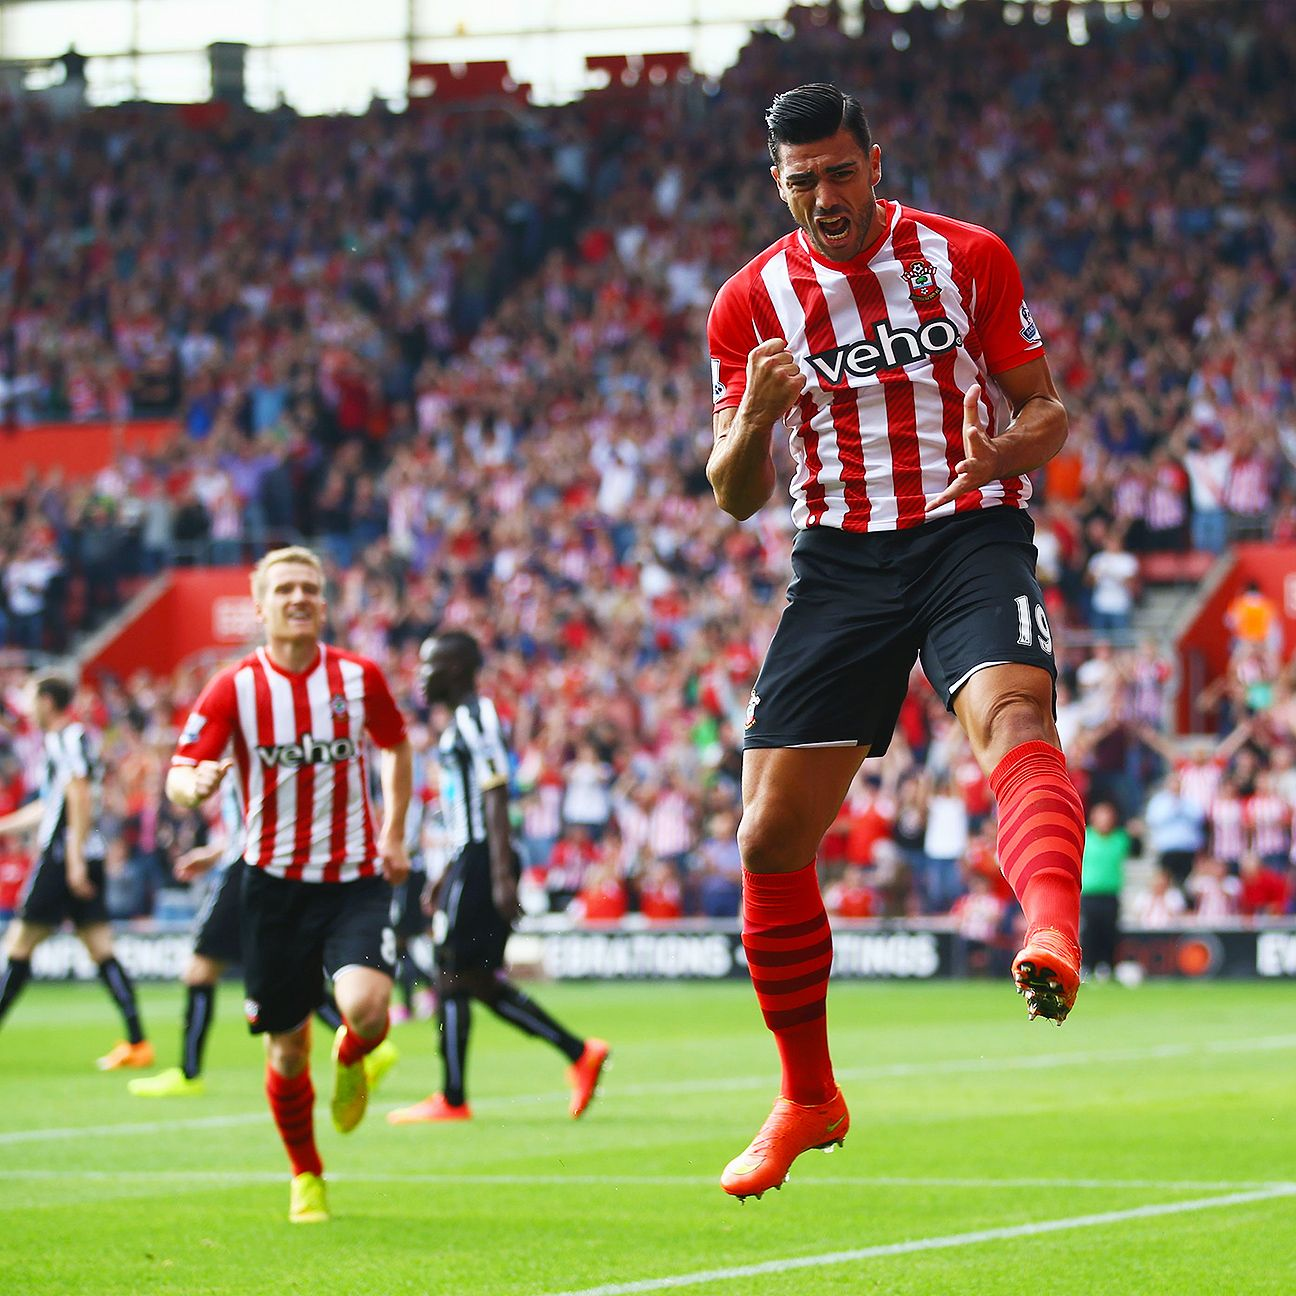 Two goals and an assist made Southampton's Graziano Pelle a fantasy steal.